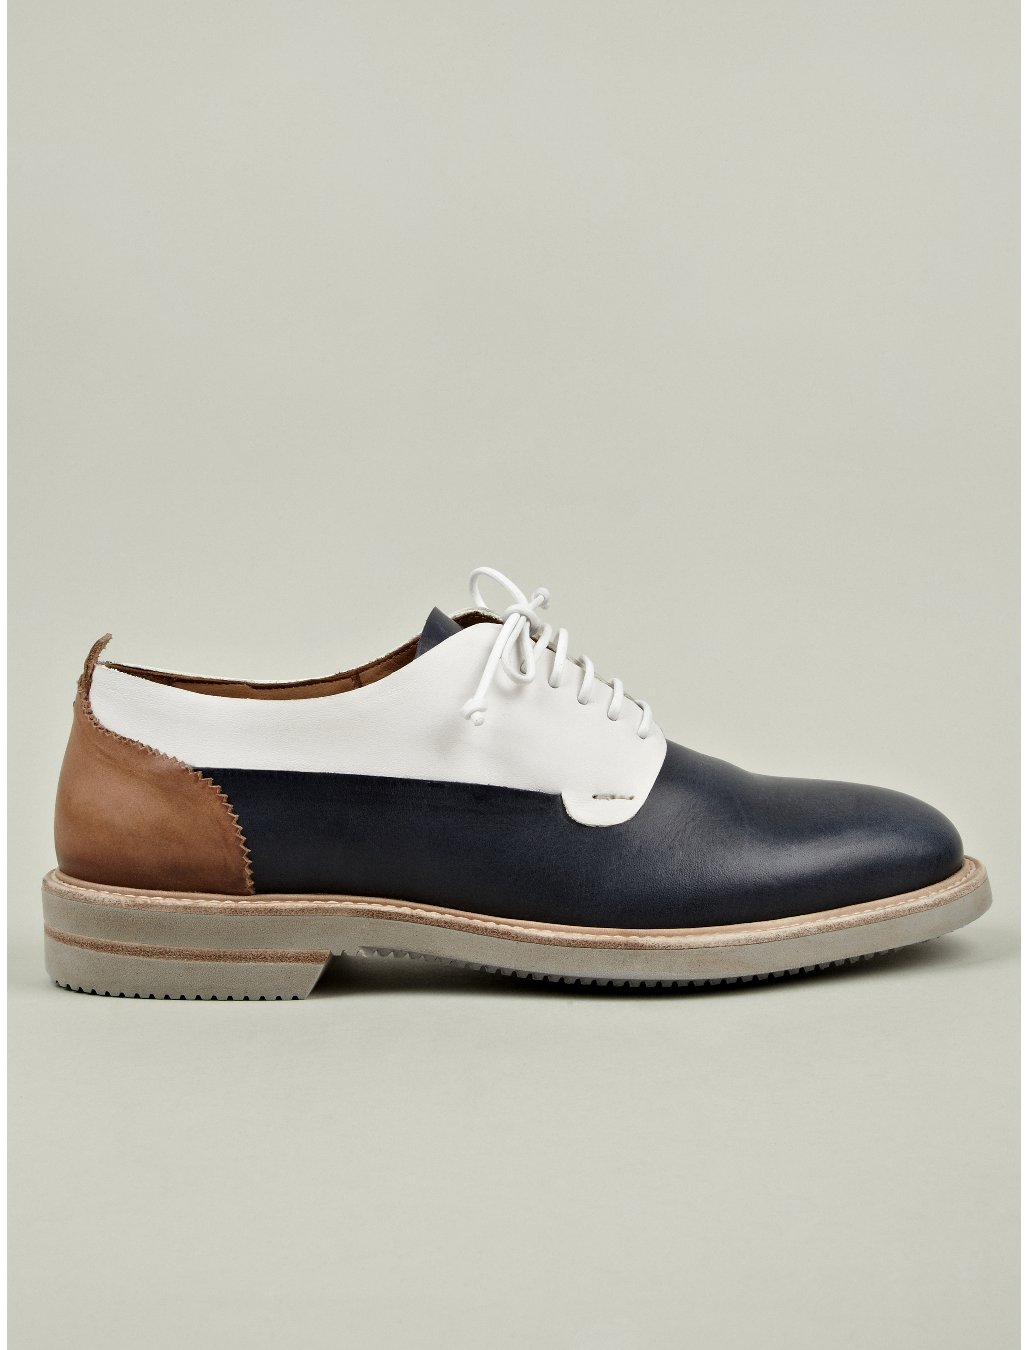 Alexander Mcqueen Mens Minnesota Leather Saddle Shoe in ...